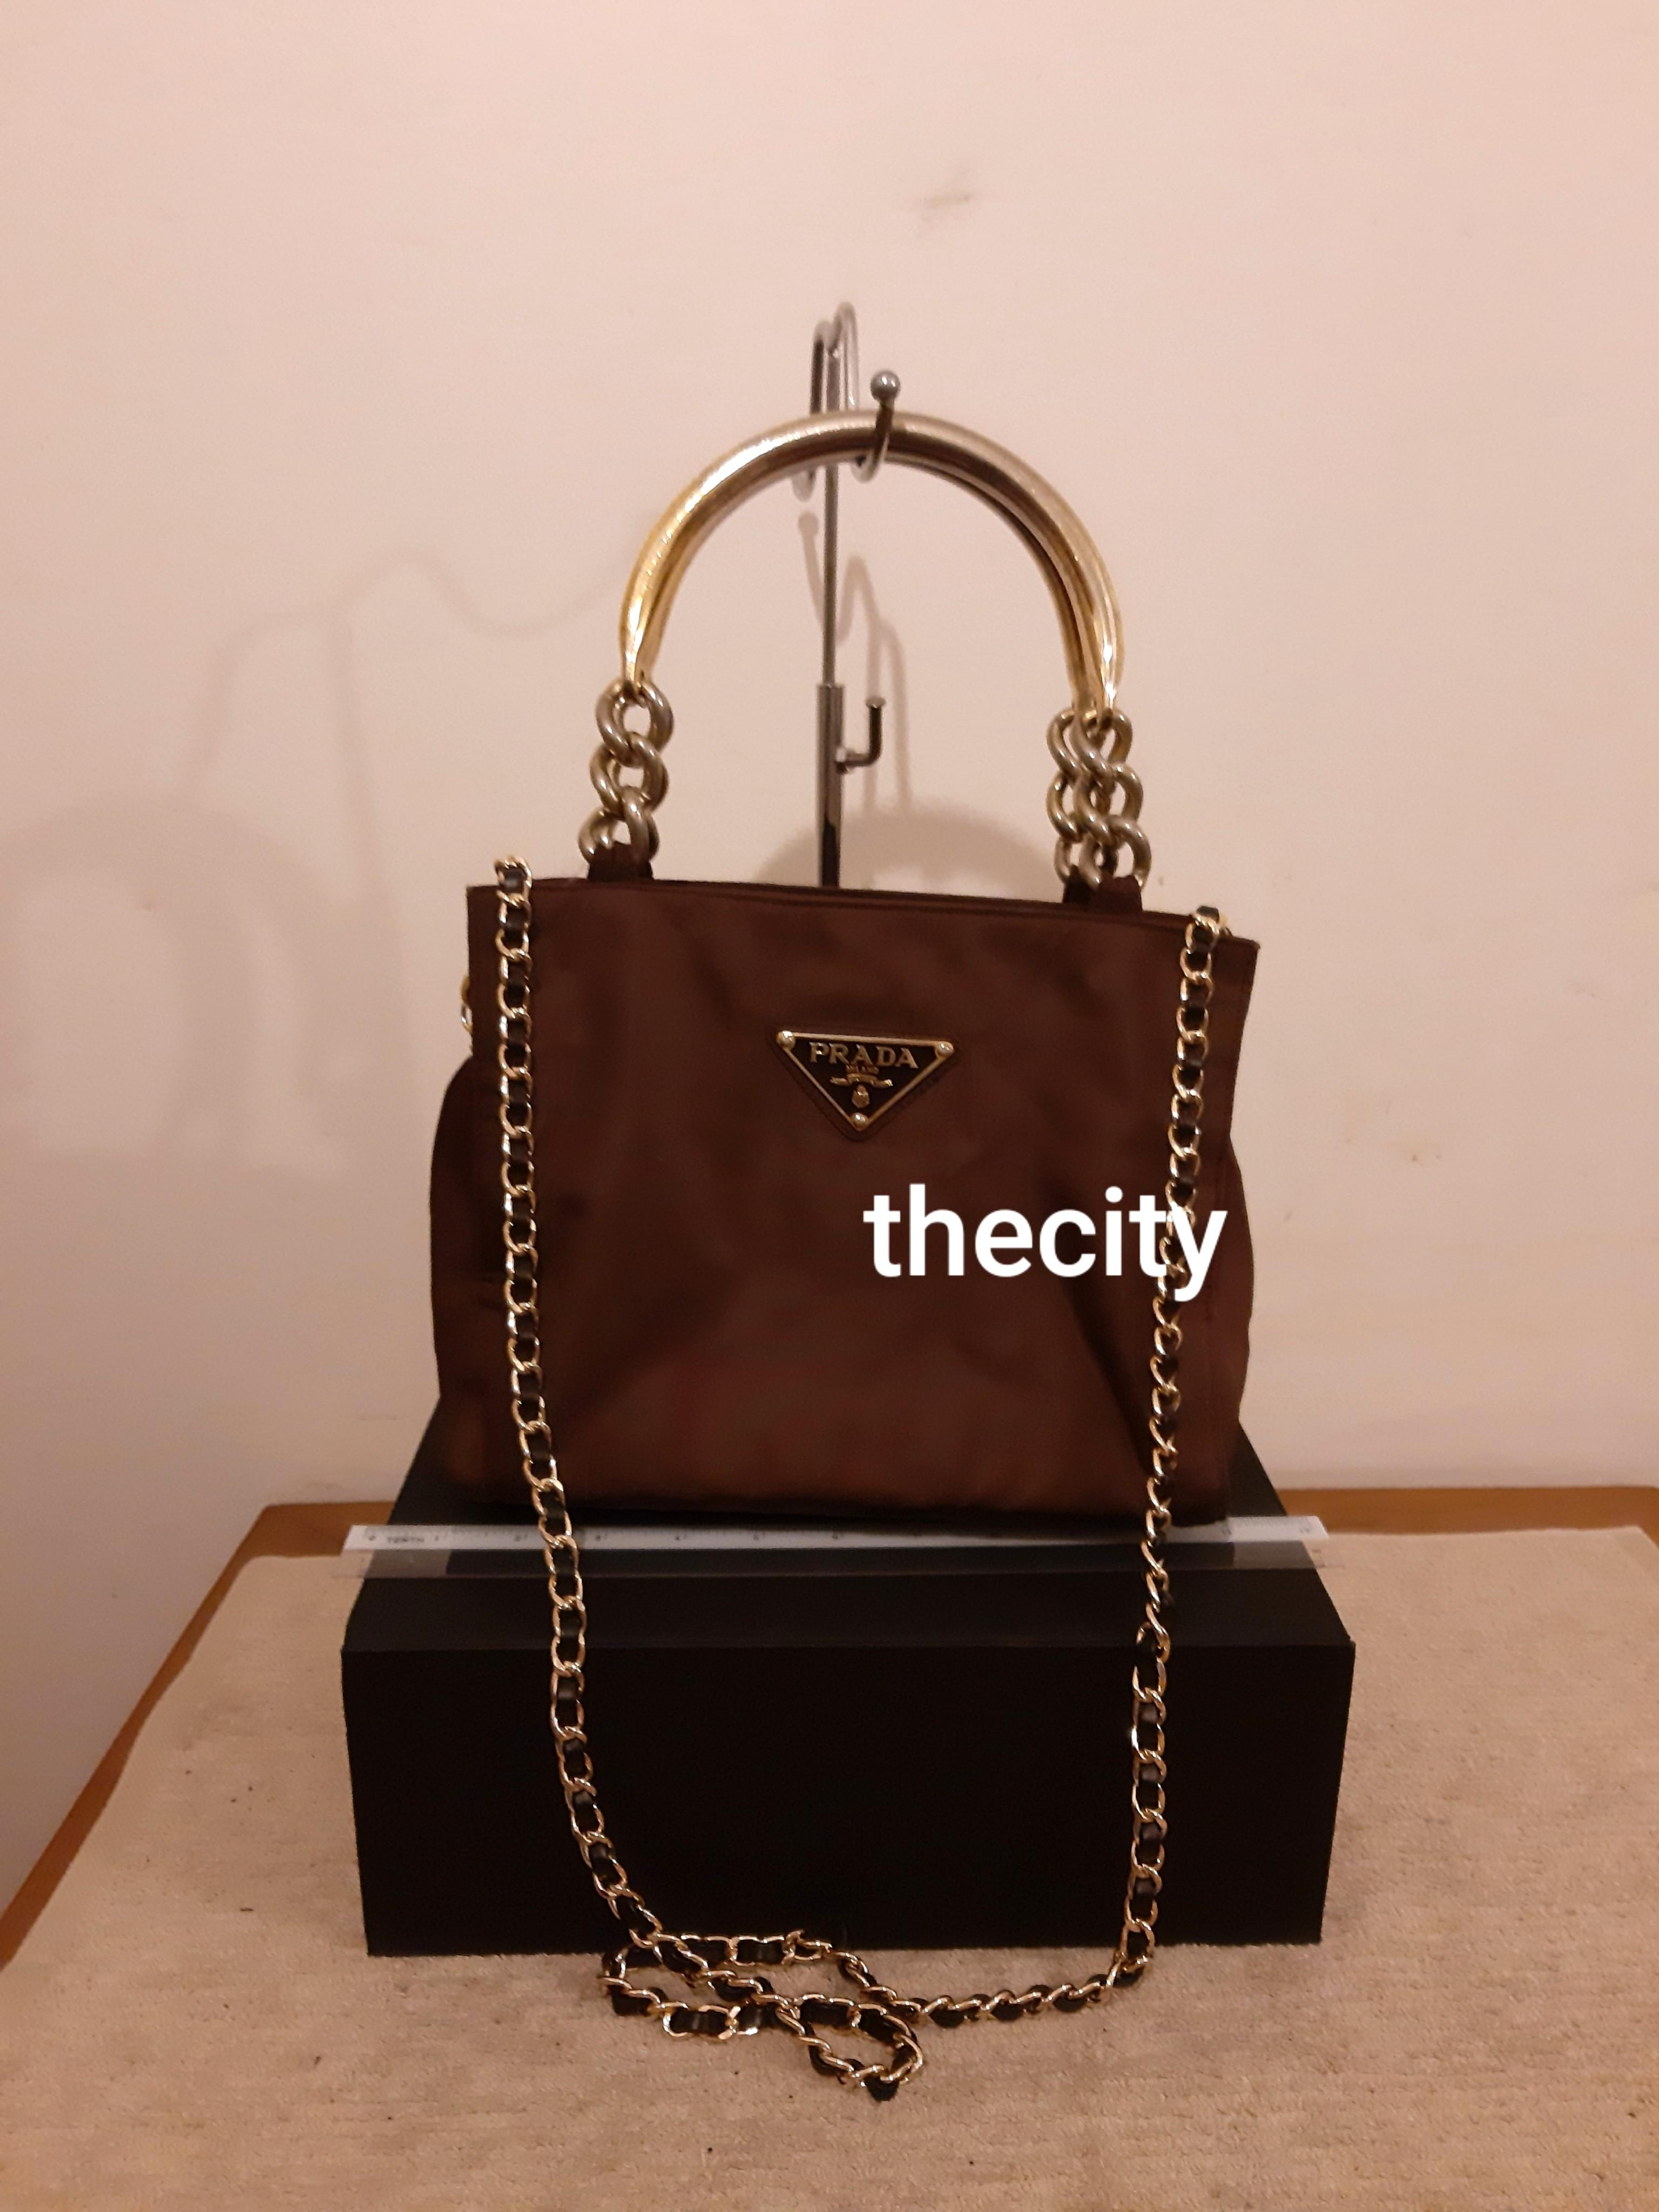 AUTHENTIC PRADA TOTE - BROWN NYLON CANVAS - GOLD HARDWARE - CLEAN INTERIOR - WITH EXTRA HOOKS & LONG CHAIN STRAP FOR SLING CROSSBODY- (PRADA CHAIN SHOULDER BAGS NOW RETAIL AROUND RM 5000+)